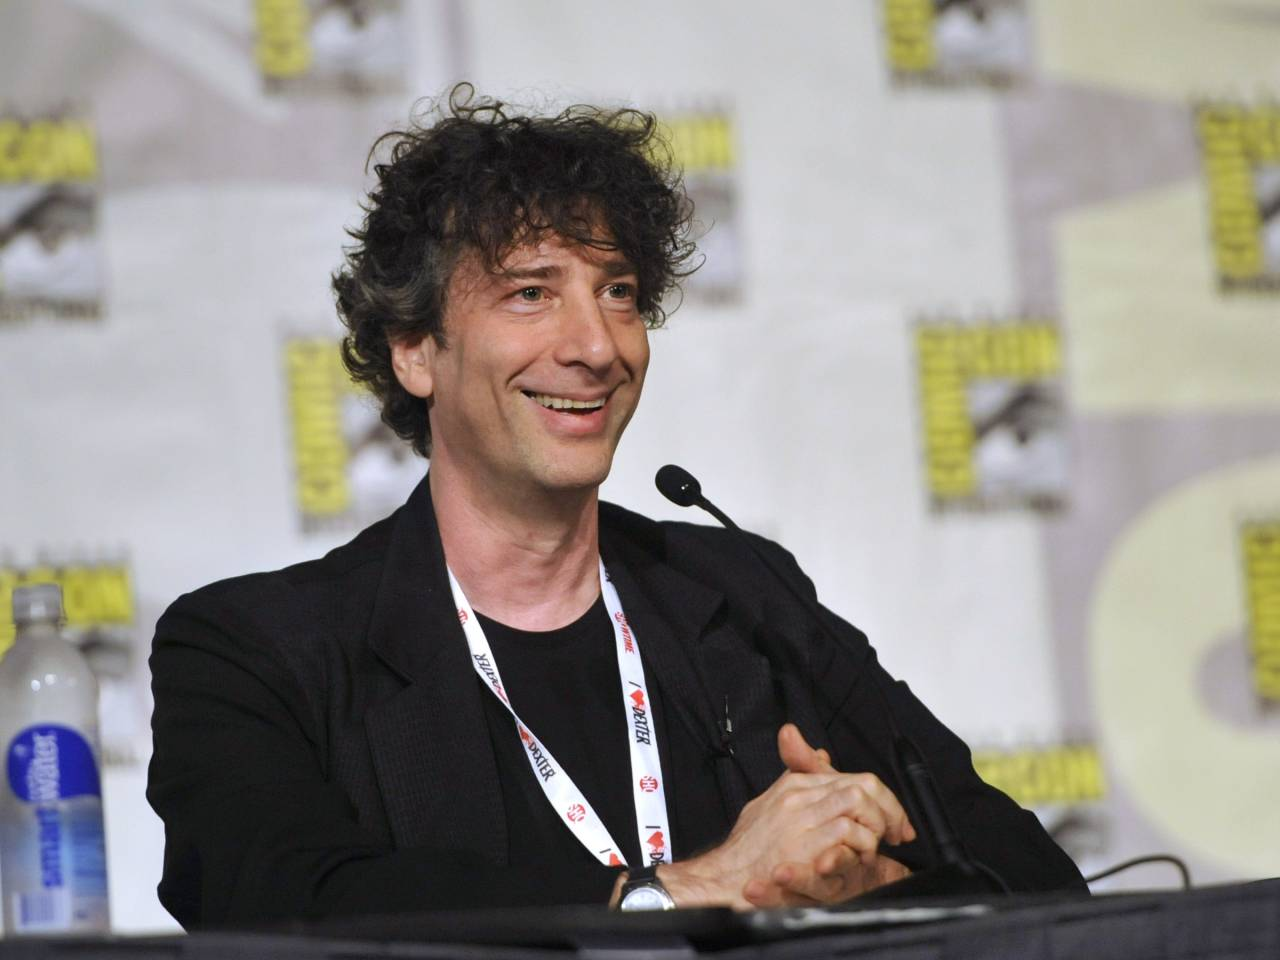 The Seven Sisters: Neil Gaiman's new novel, sequel of Neverwhere